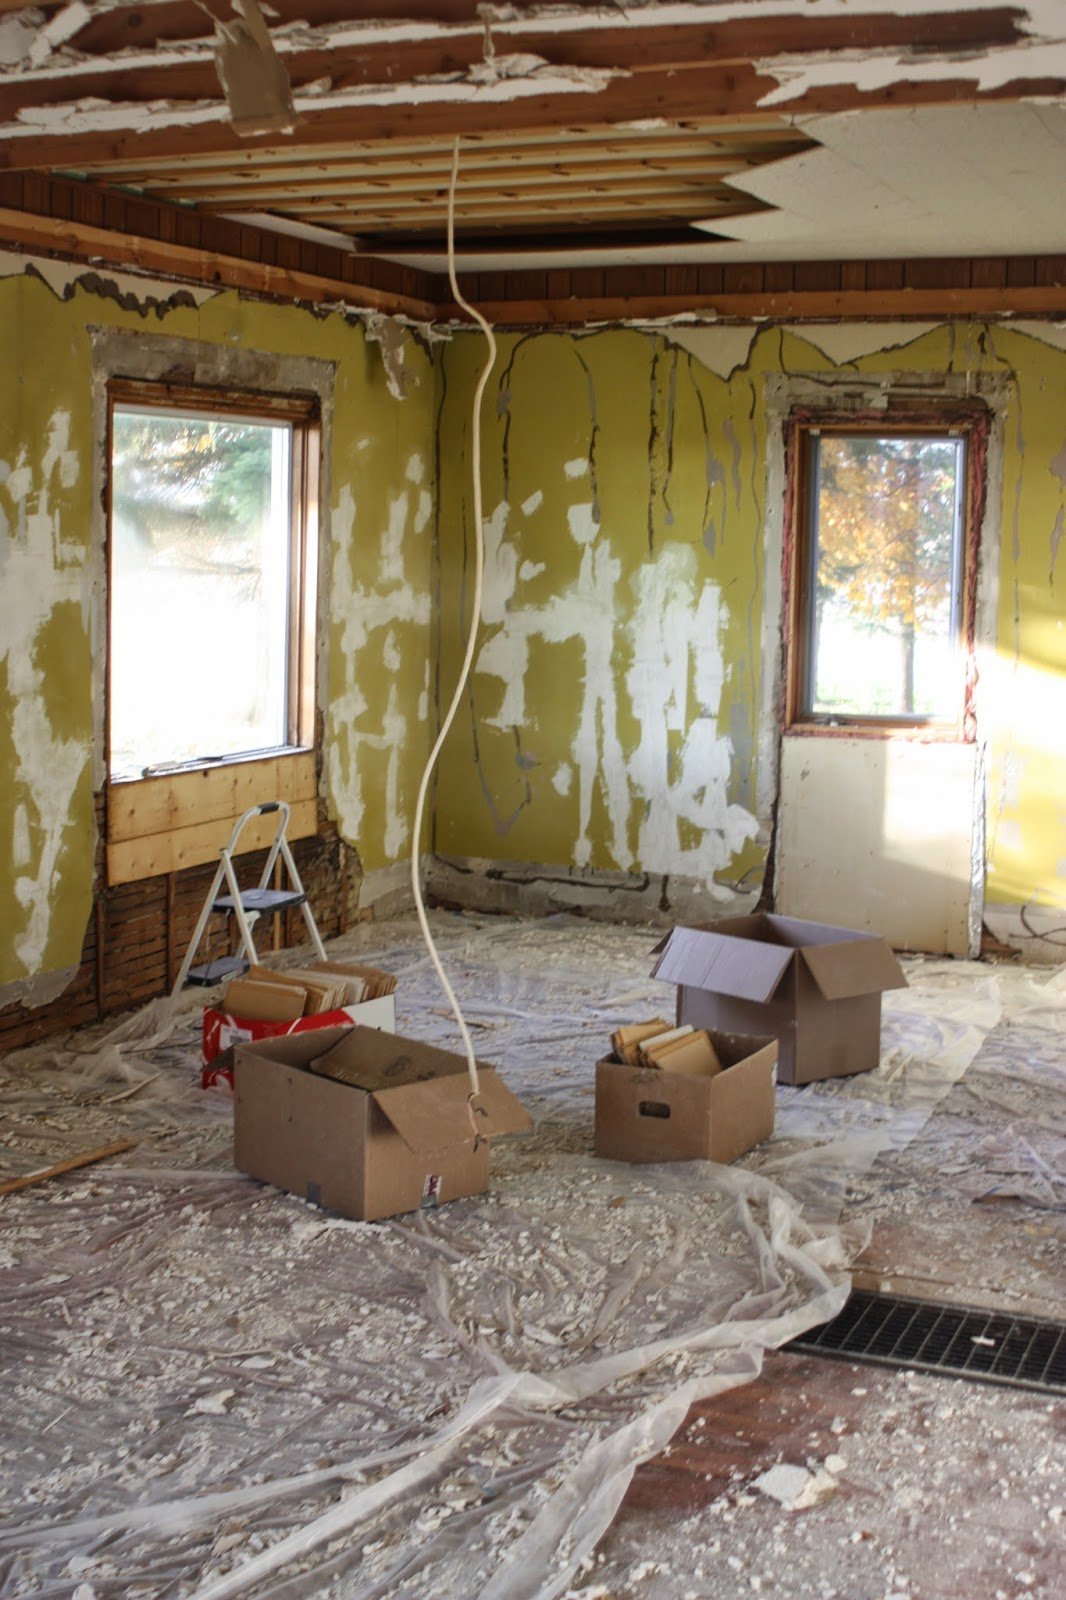 Demolition phase iii we struck gold the popcorn ceilings get so it was a lot of ripping down sheetrock removing the drop ceiling frame and ripping out the old ceiling tiles the filing boxes we used for moving dailygadgetfo Images